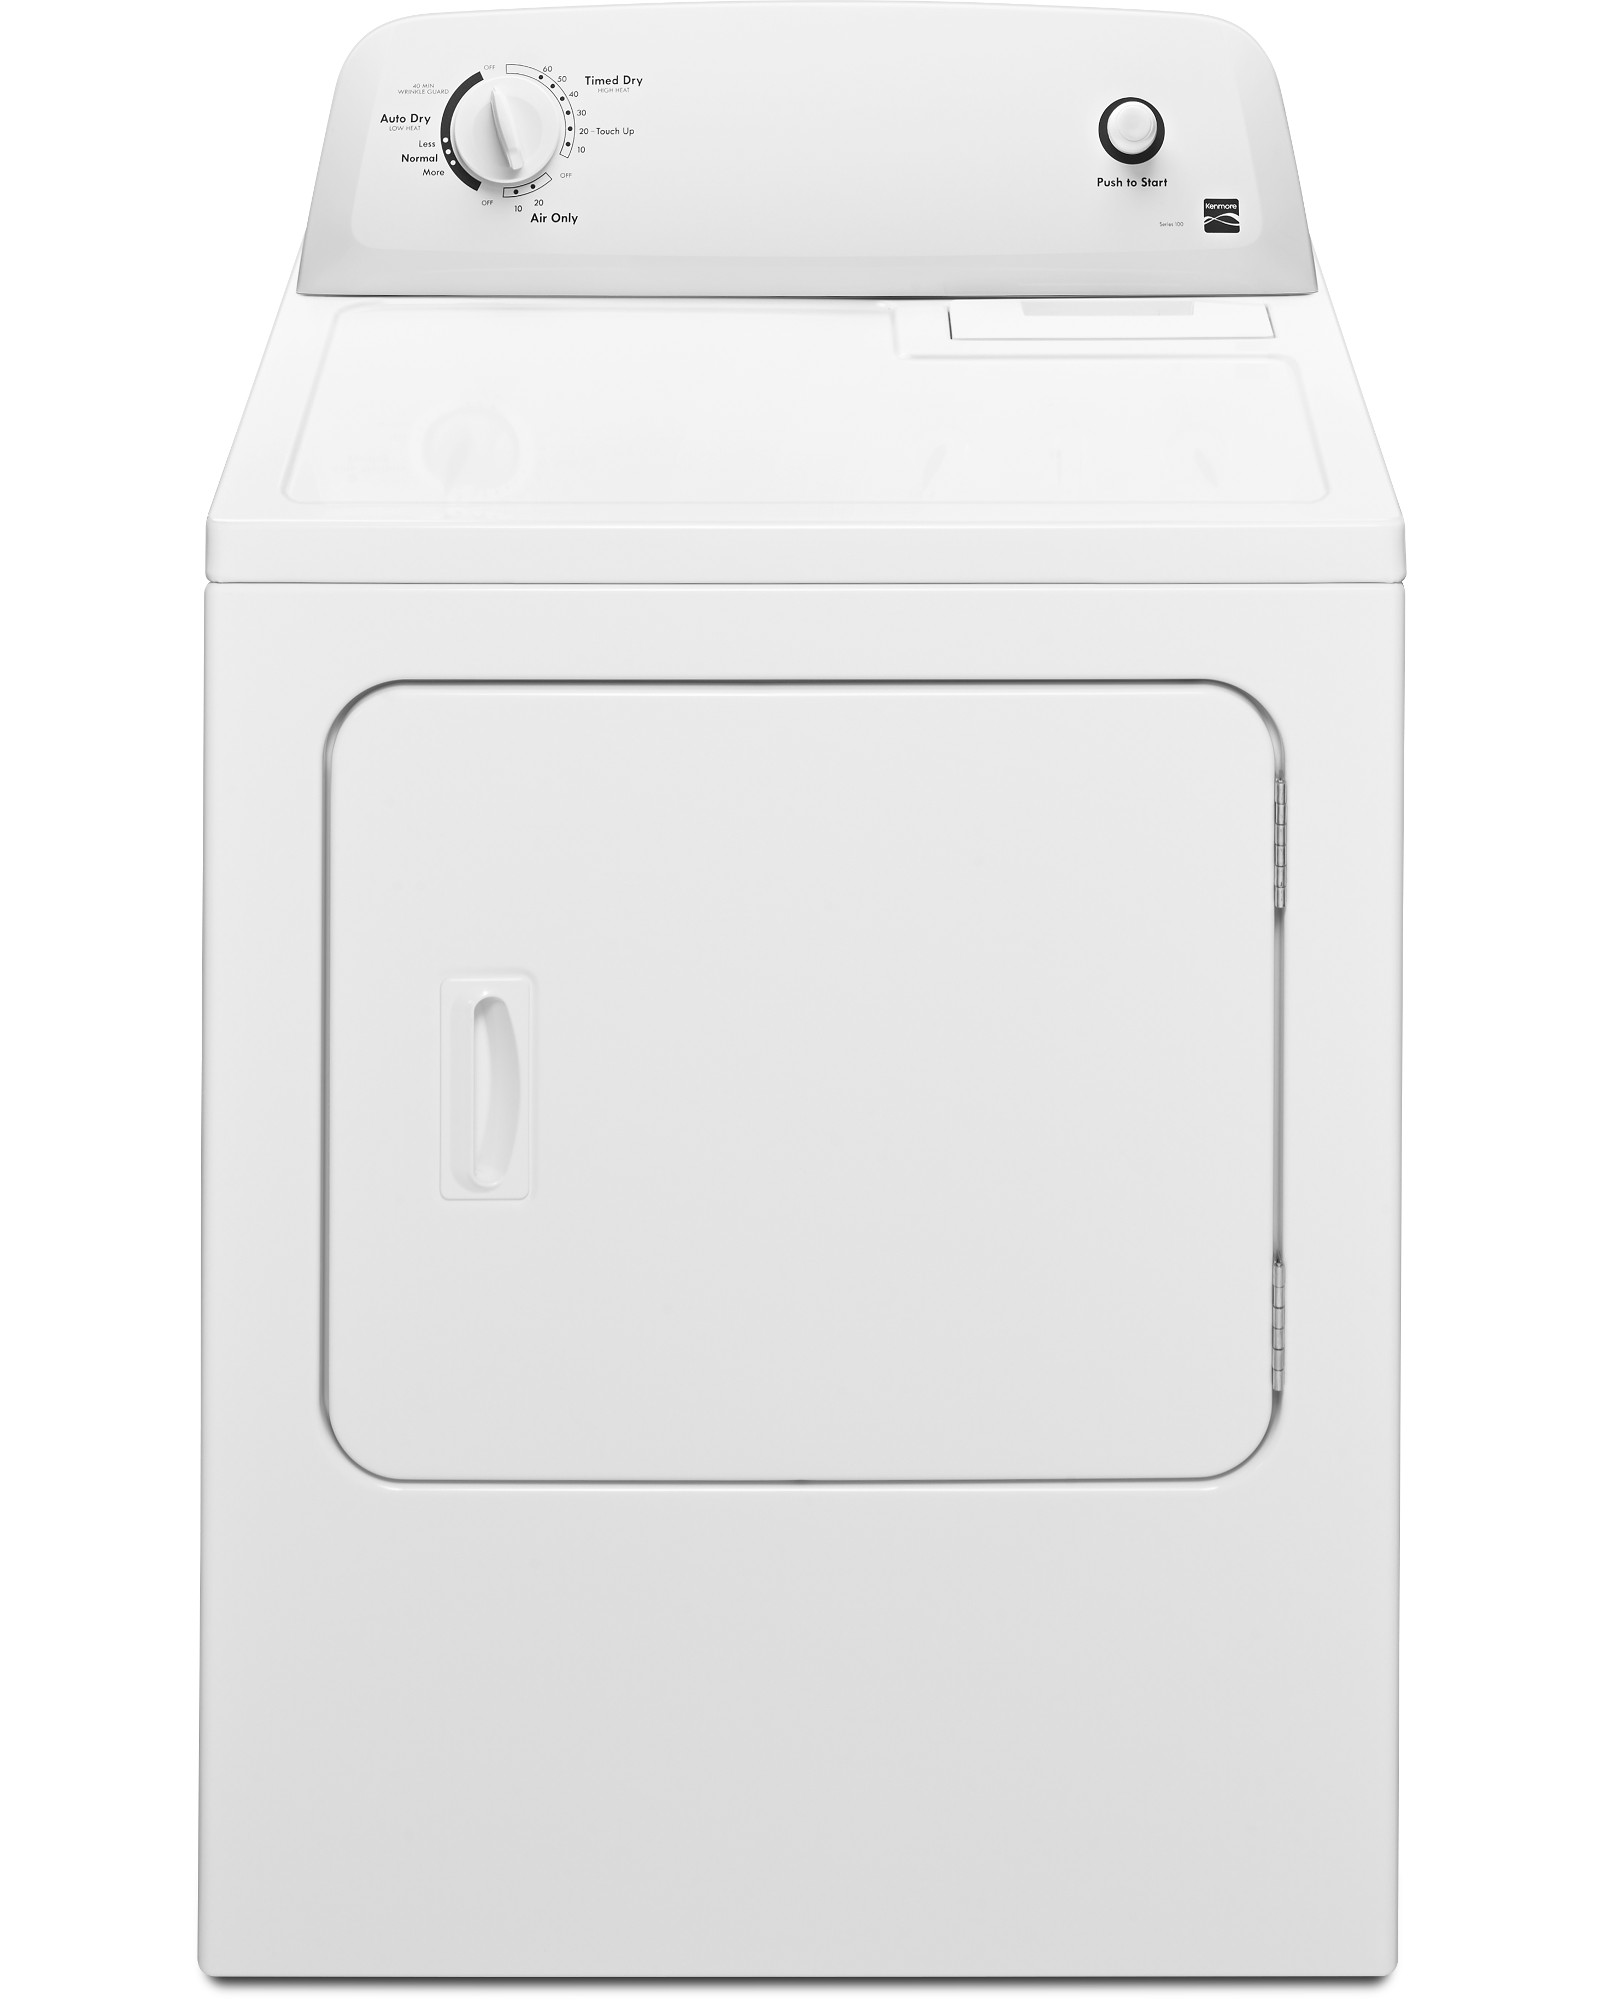 Kenmore-70222-6-5-cu-ft-Gas-Dryer-White